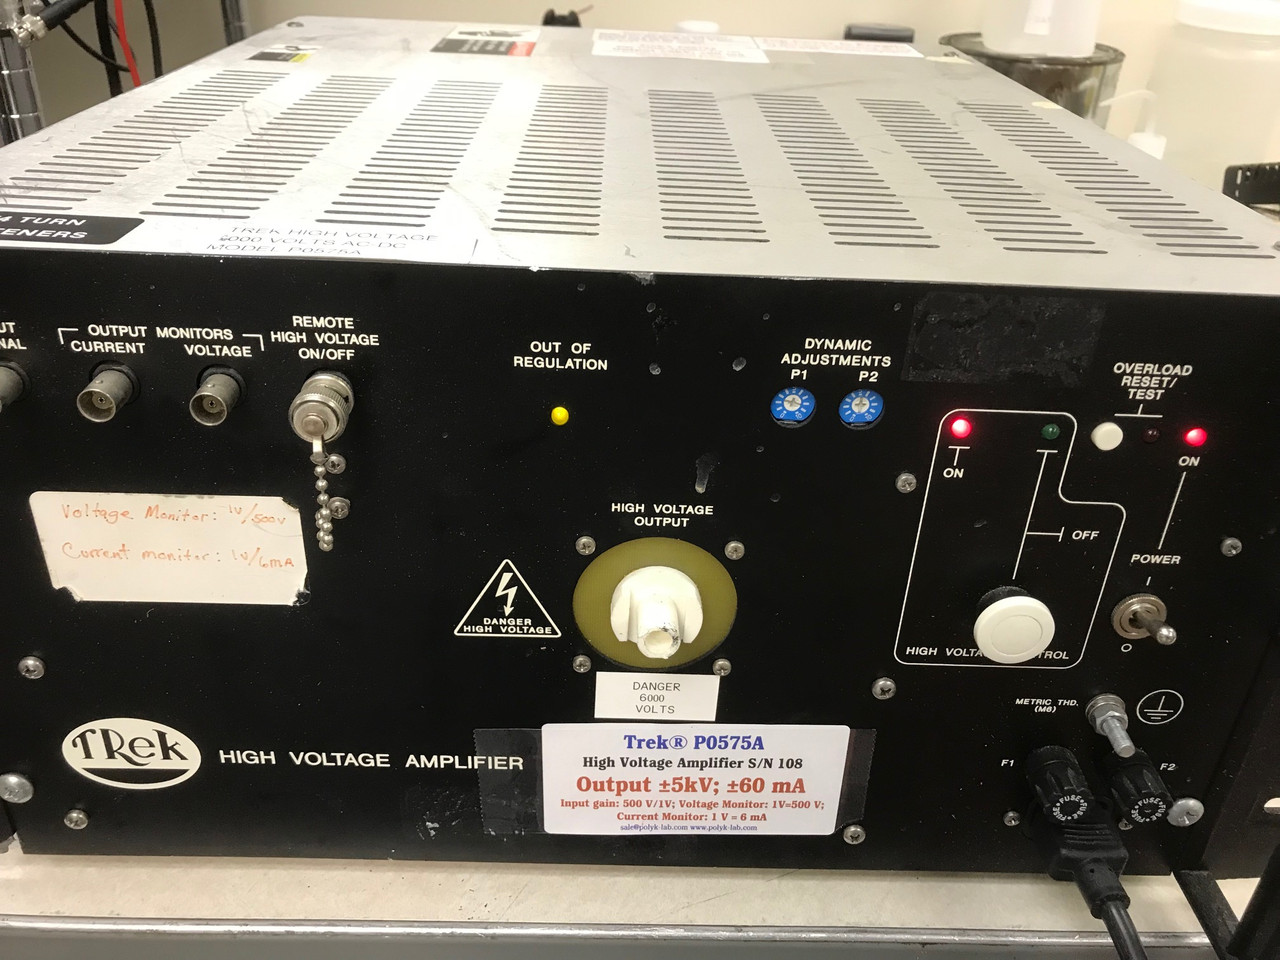 Trek P0575A 5/80 High Voltage Amplifier +/-5 kV, 60 mA, HV cable and warranty